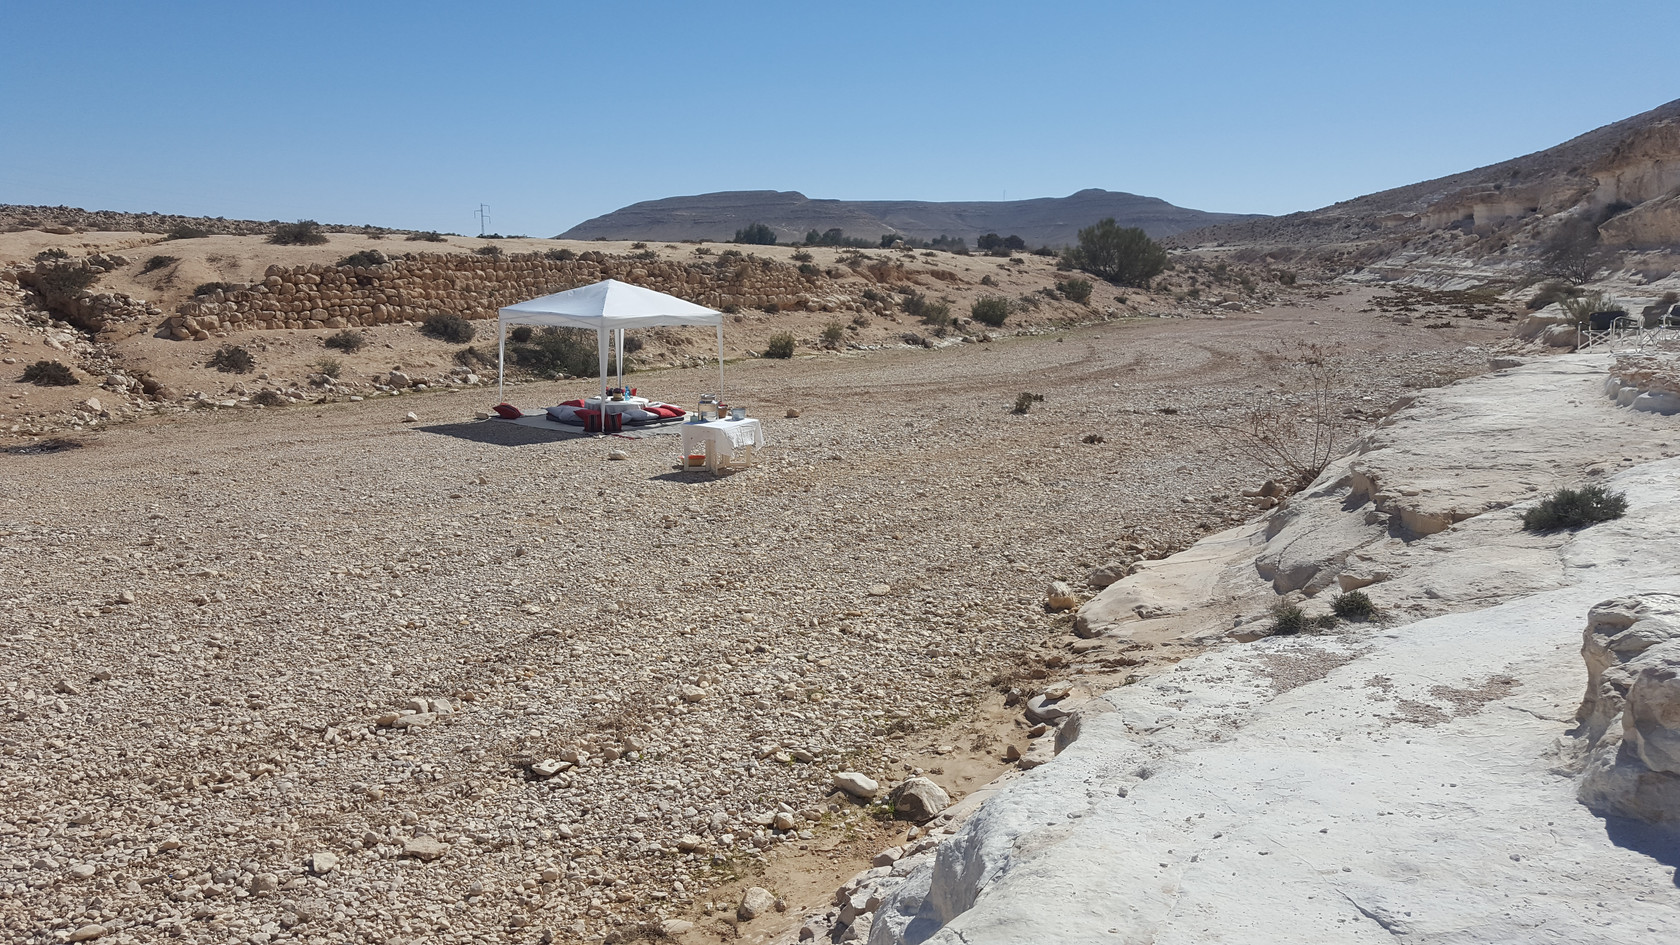 Luxury Lunch for a family in the desert Israel